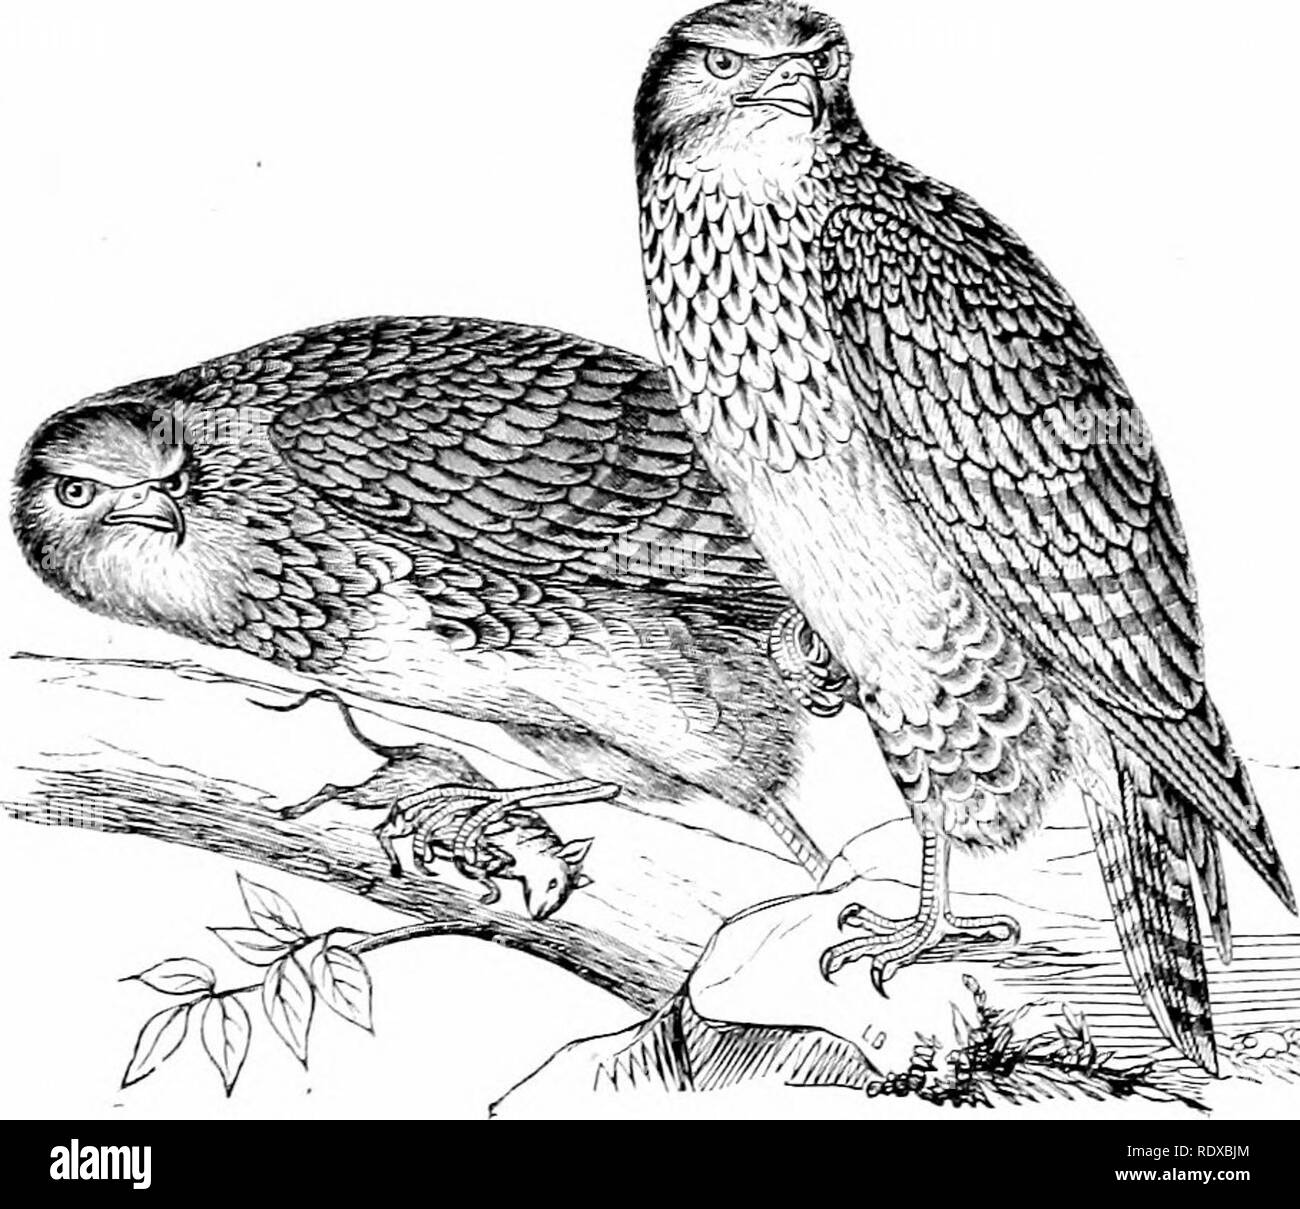 . Reptiles and birds : a popular account of their various orders : with a description of the habits and economy of the most interesting . Birds; Reptiles. HAEEIEES. 627 in her nest; these she killed, evidently feeling that she was not allied to them by anj' maternal tie. The principal species are the Common Buzzard {Buteo culgaris), Fig. 298, which is found all over Europe—it was until lately very common in England; the Honey Buzzard [Pernis apivorus), a native of Eastern Europe—this bird is partial to bees, wasps, and their larvse, of which its food principally consists—it will also eat grain - Stock Image